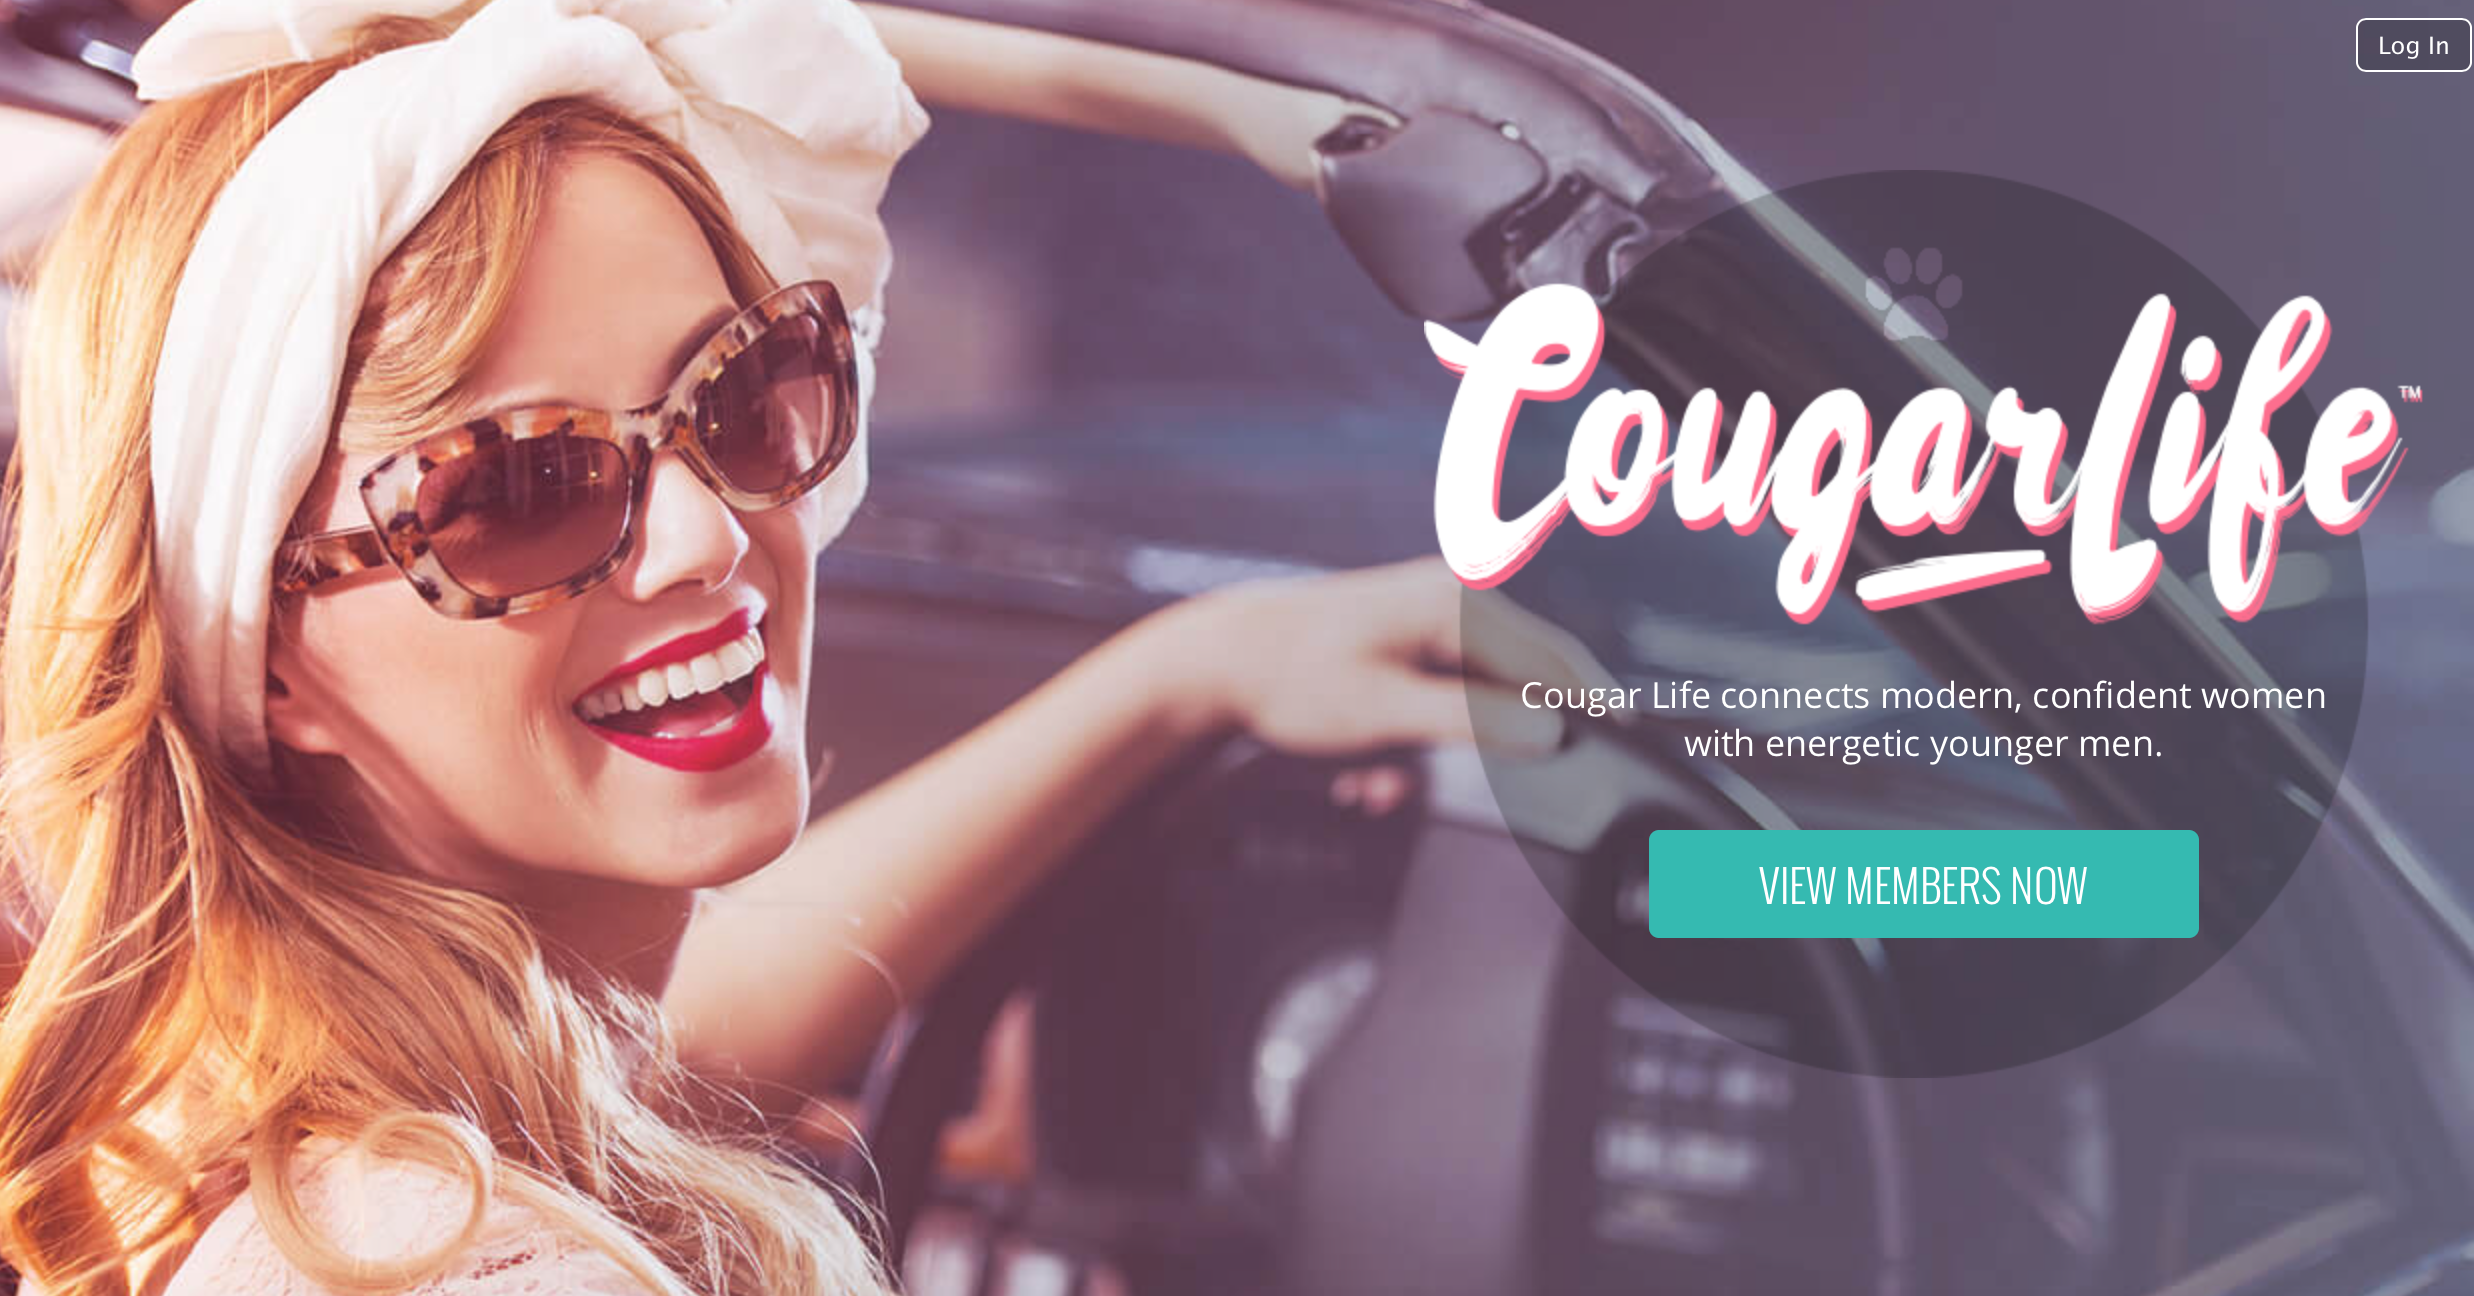 cougar dating site with free messaging Cougar dating get fresh content  this dating site permits quick access to features like messaging and emails  free registration dating sites it is a site.